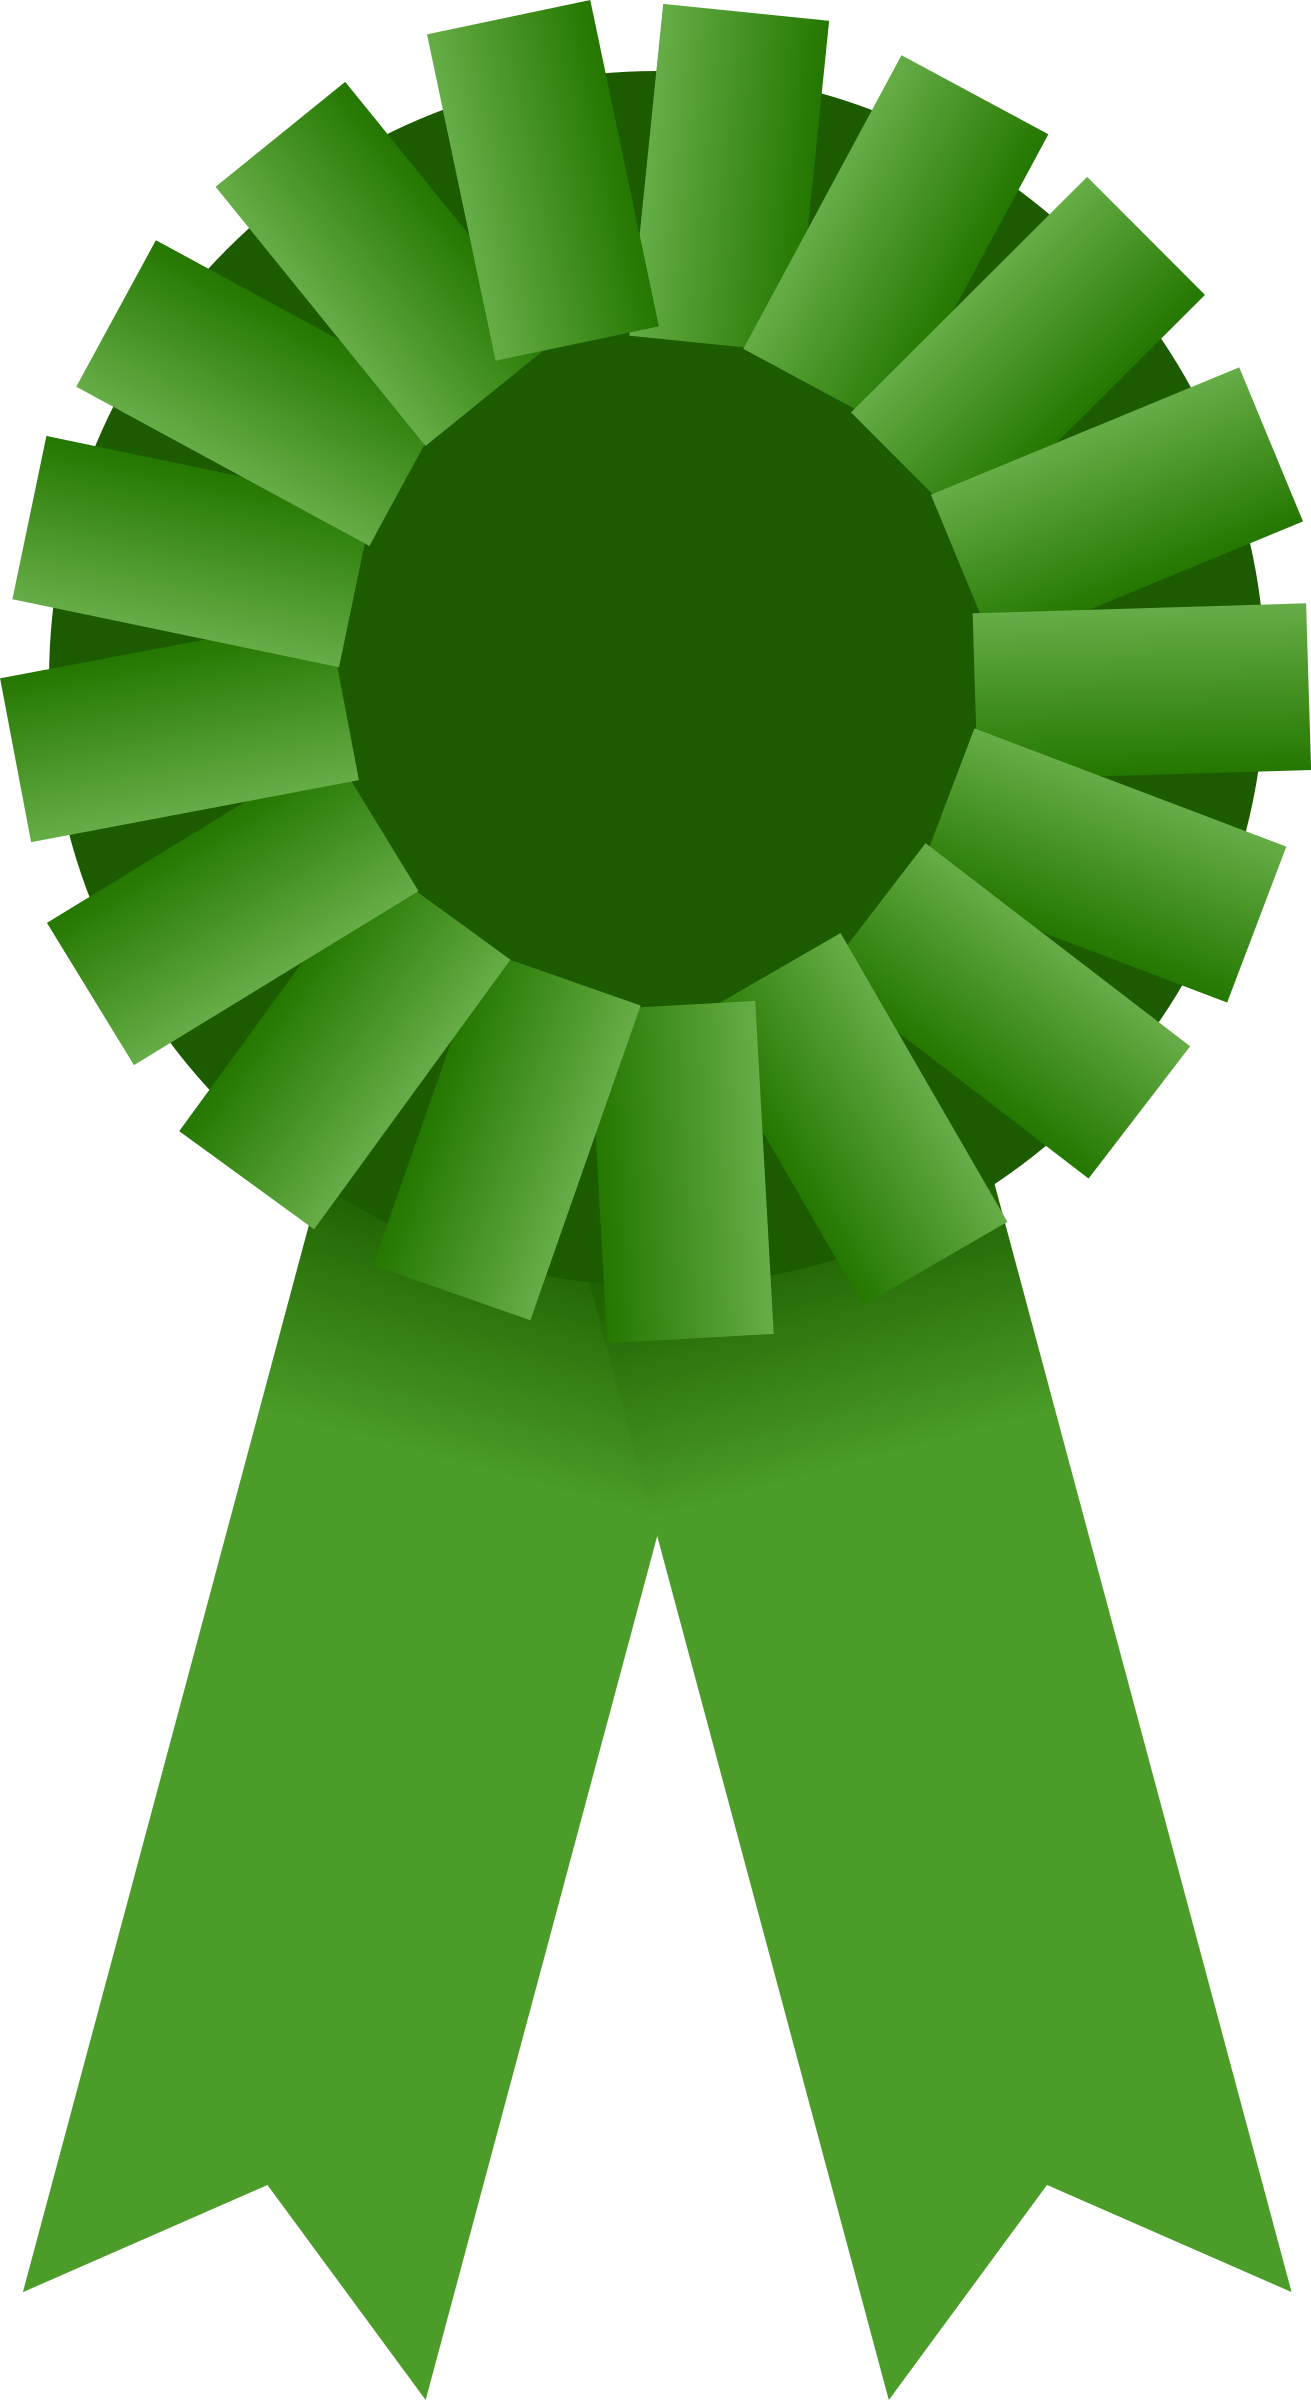 Softball clipart green. Award ribbon incep imagine